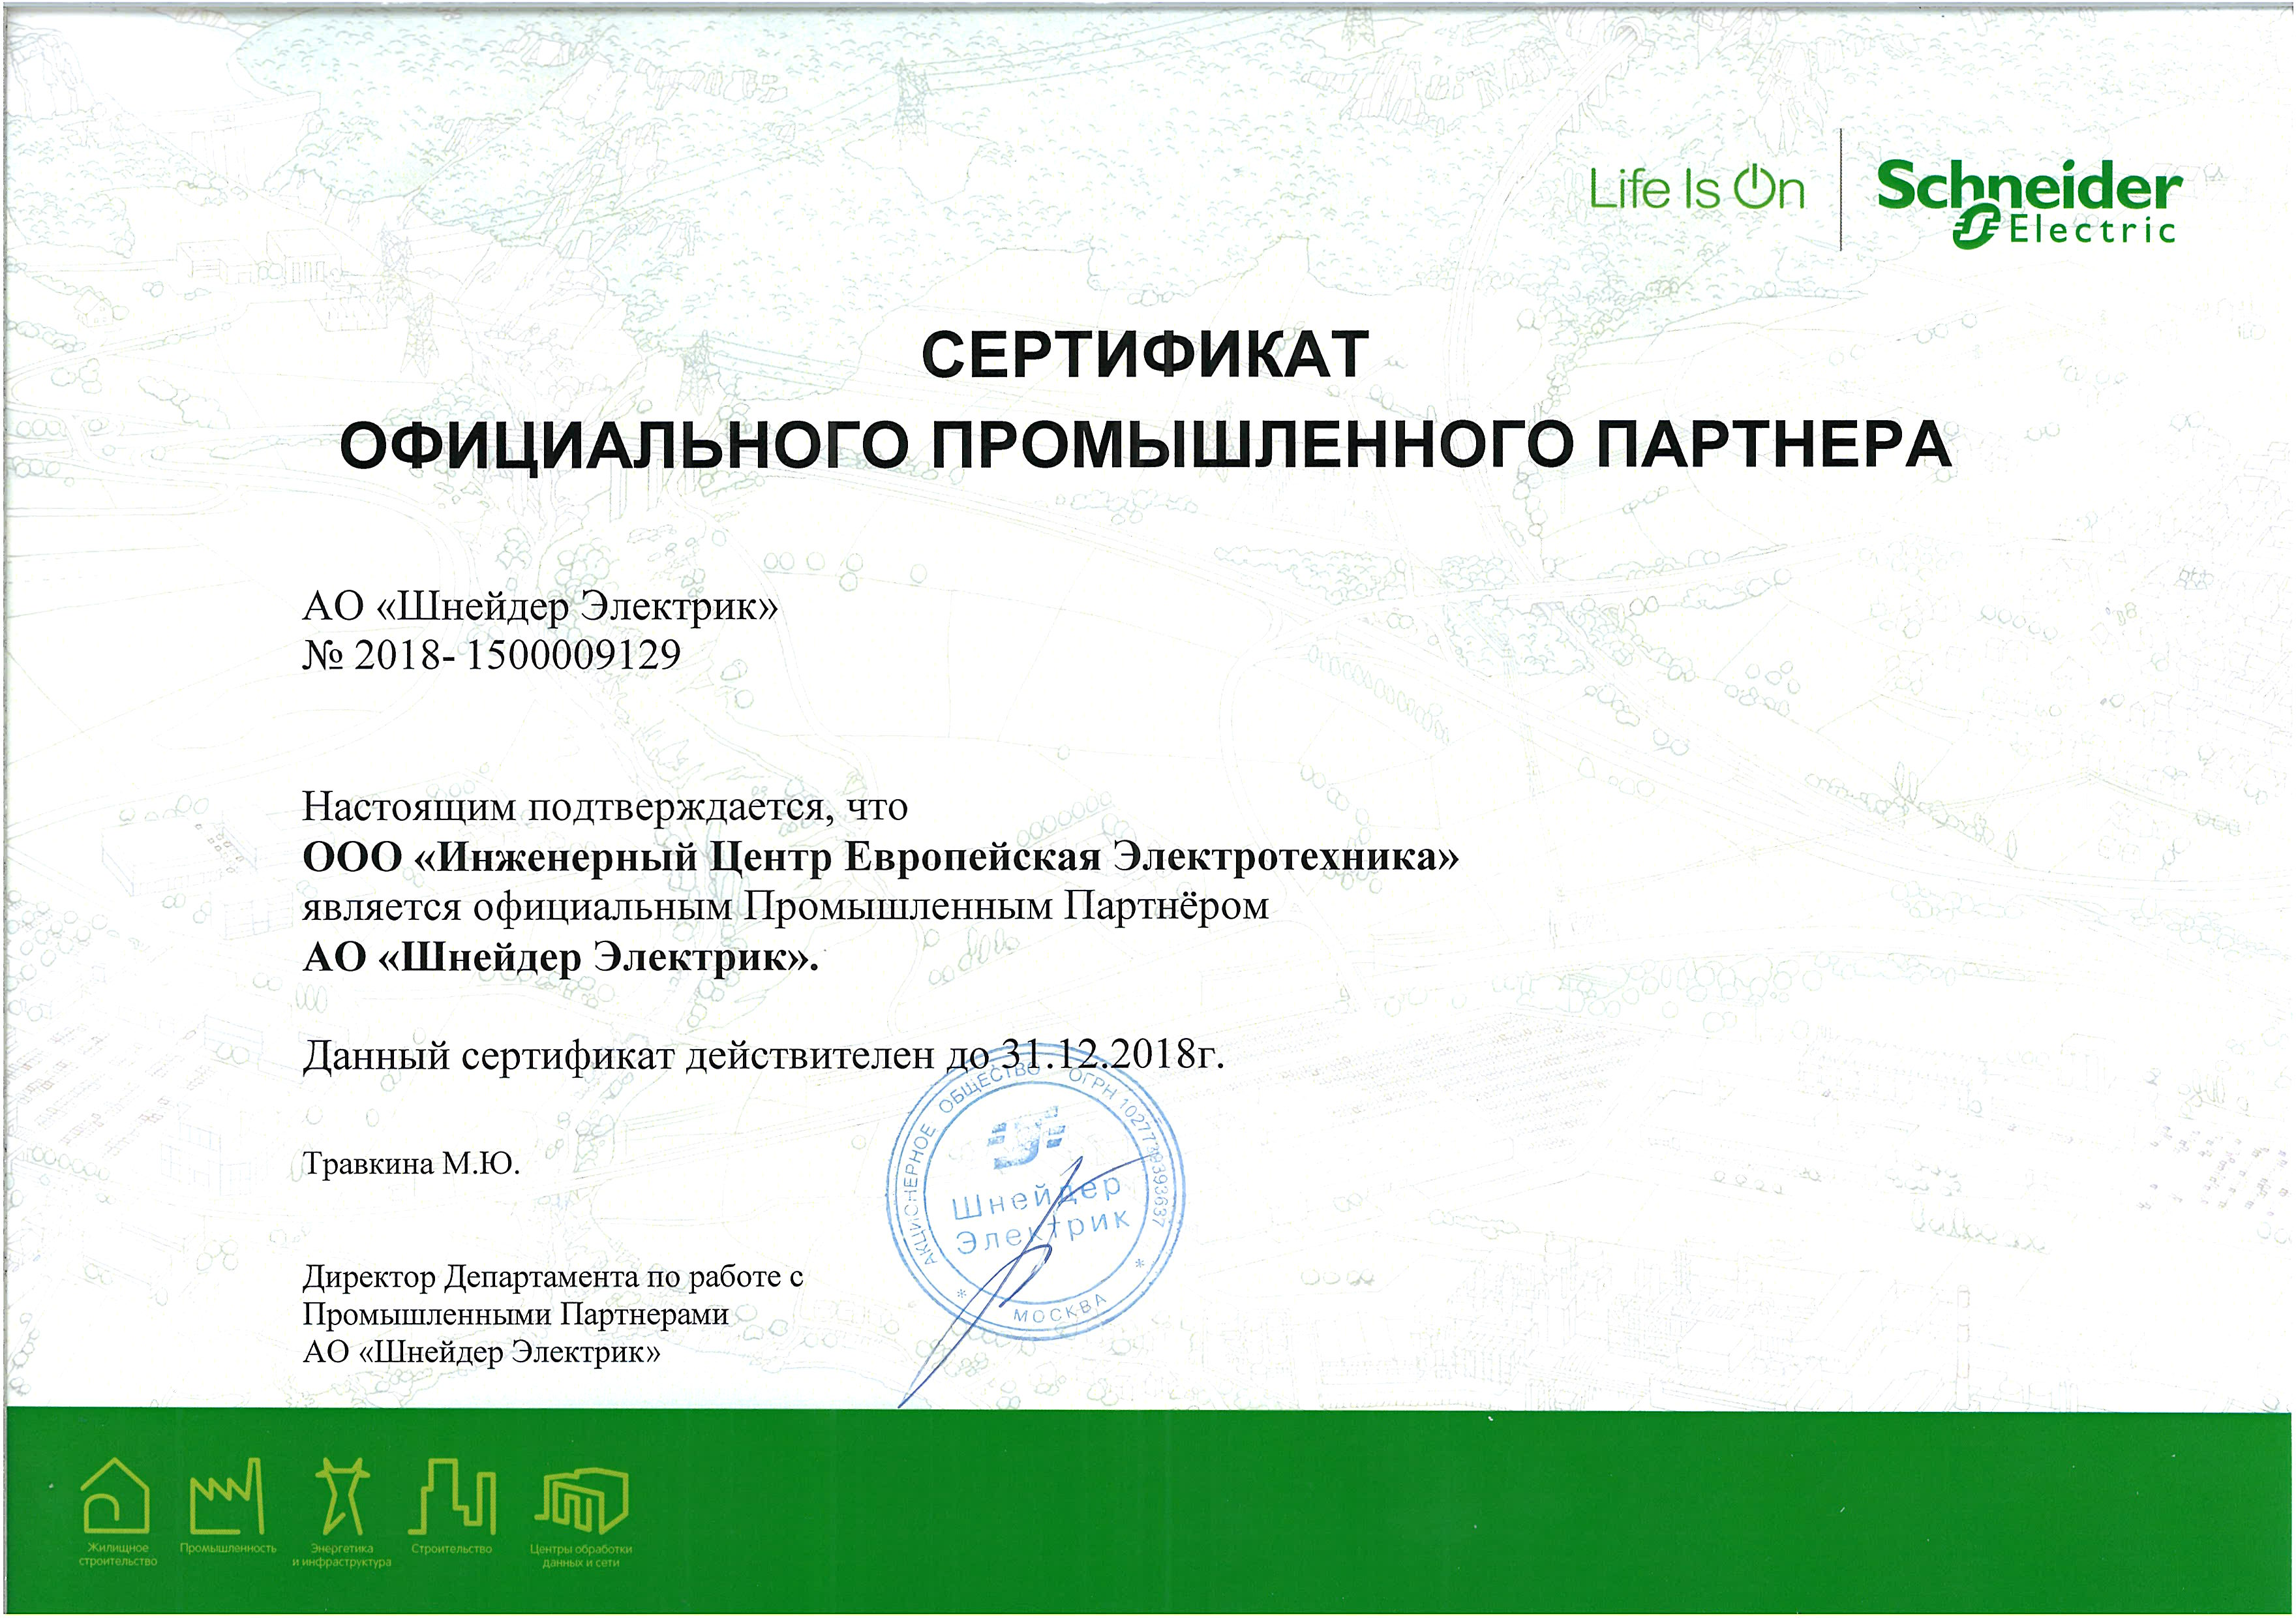 Certificate of Schneider Electric's Official Industrial Partner